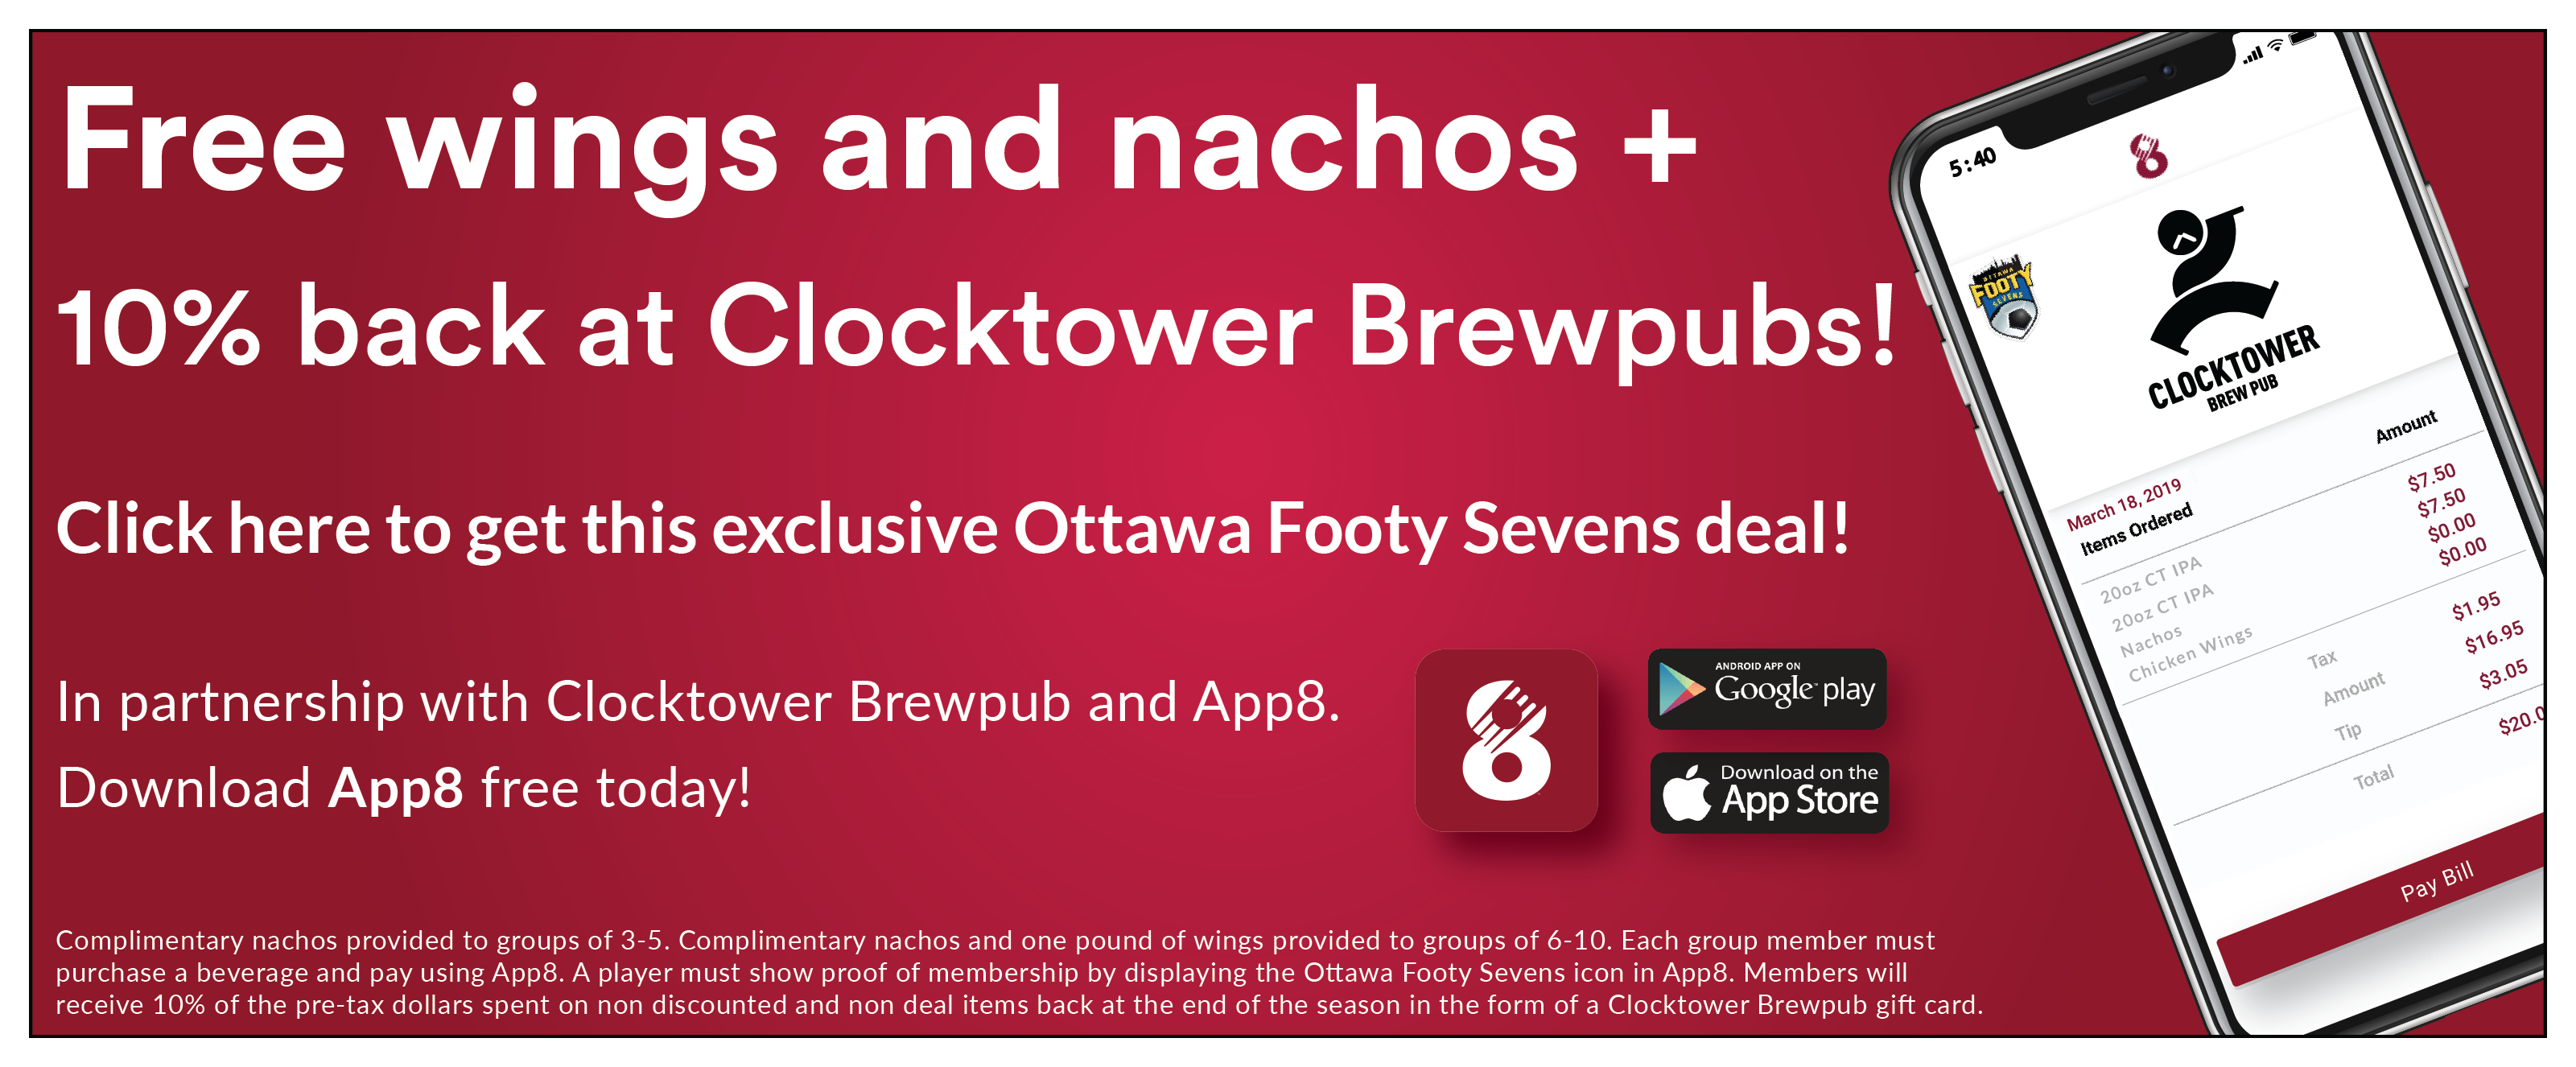 App8, Clocktower and Footy Sevens Offer